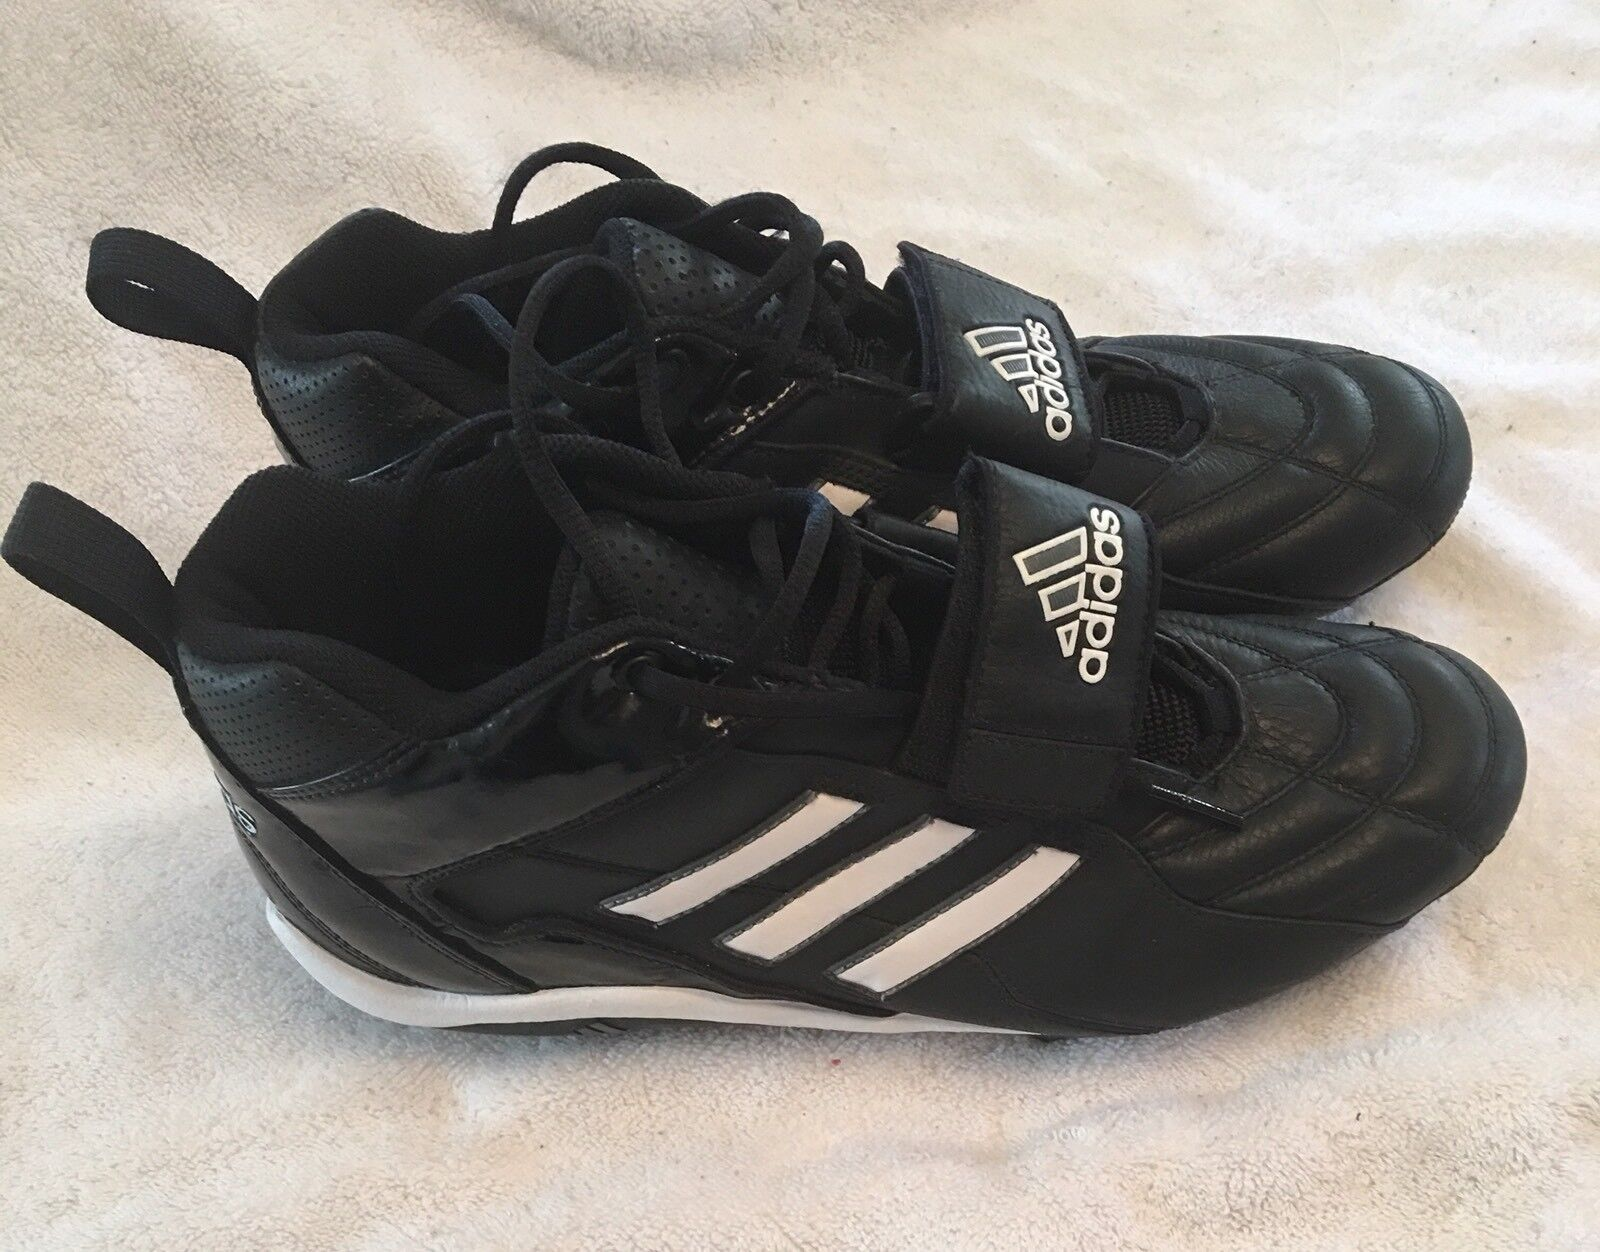 ADIDAS Mens Football Cleats Black White Shoes Comfortable Seasonal price cuts, discount benefits